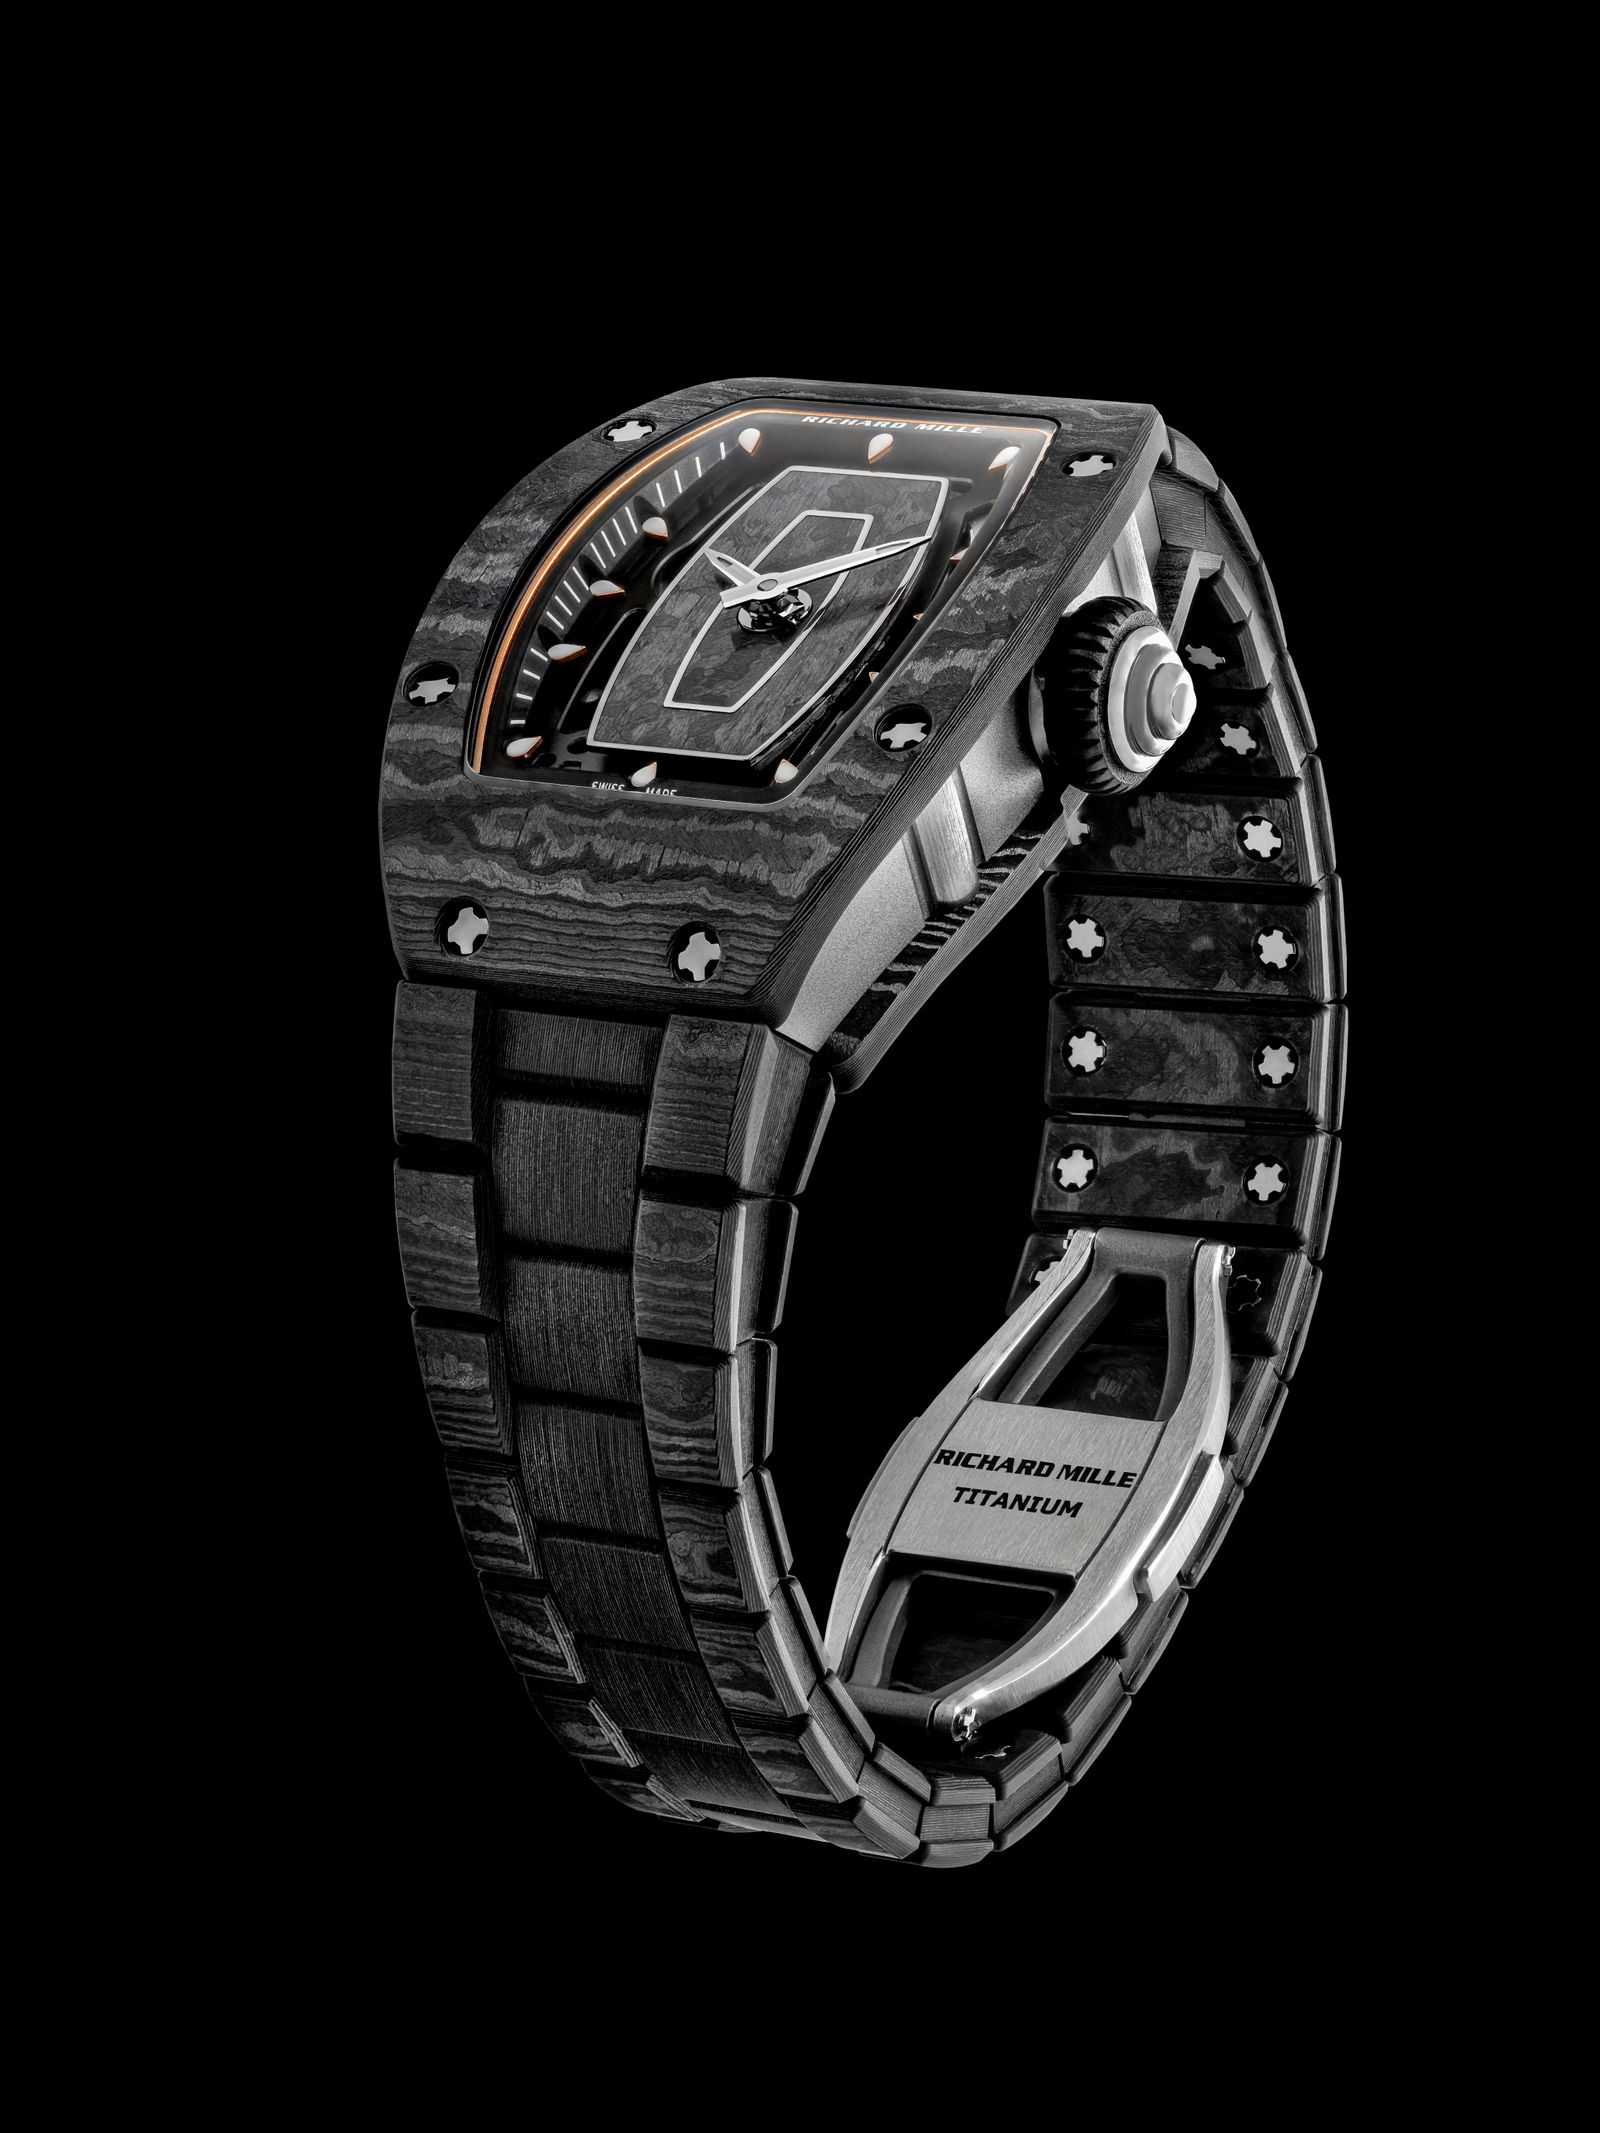 Richard Mille RM 07-01 front upward